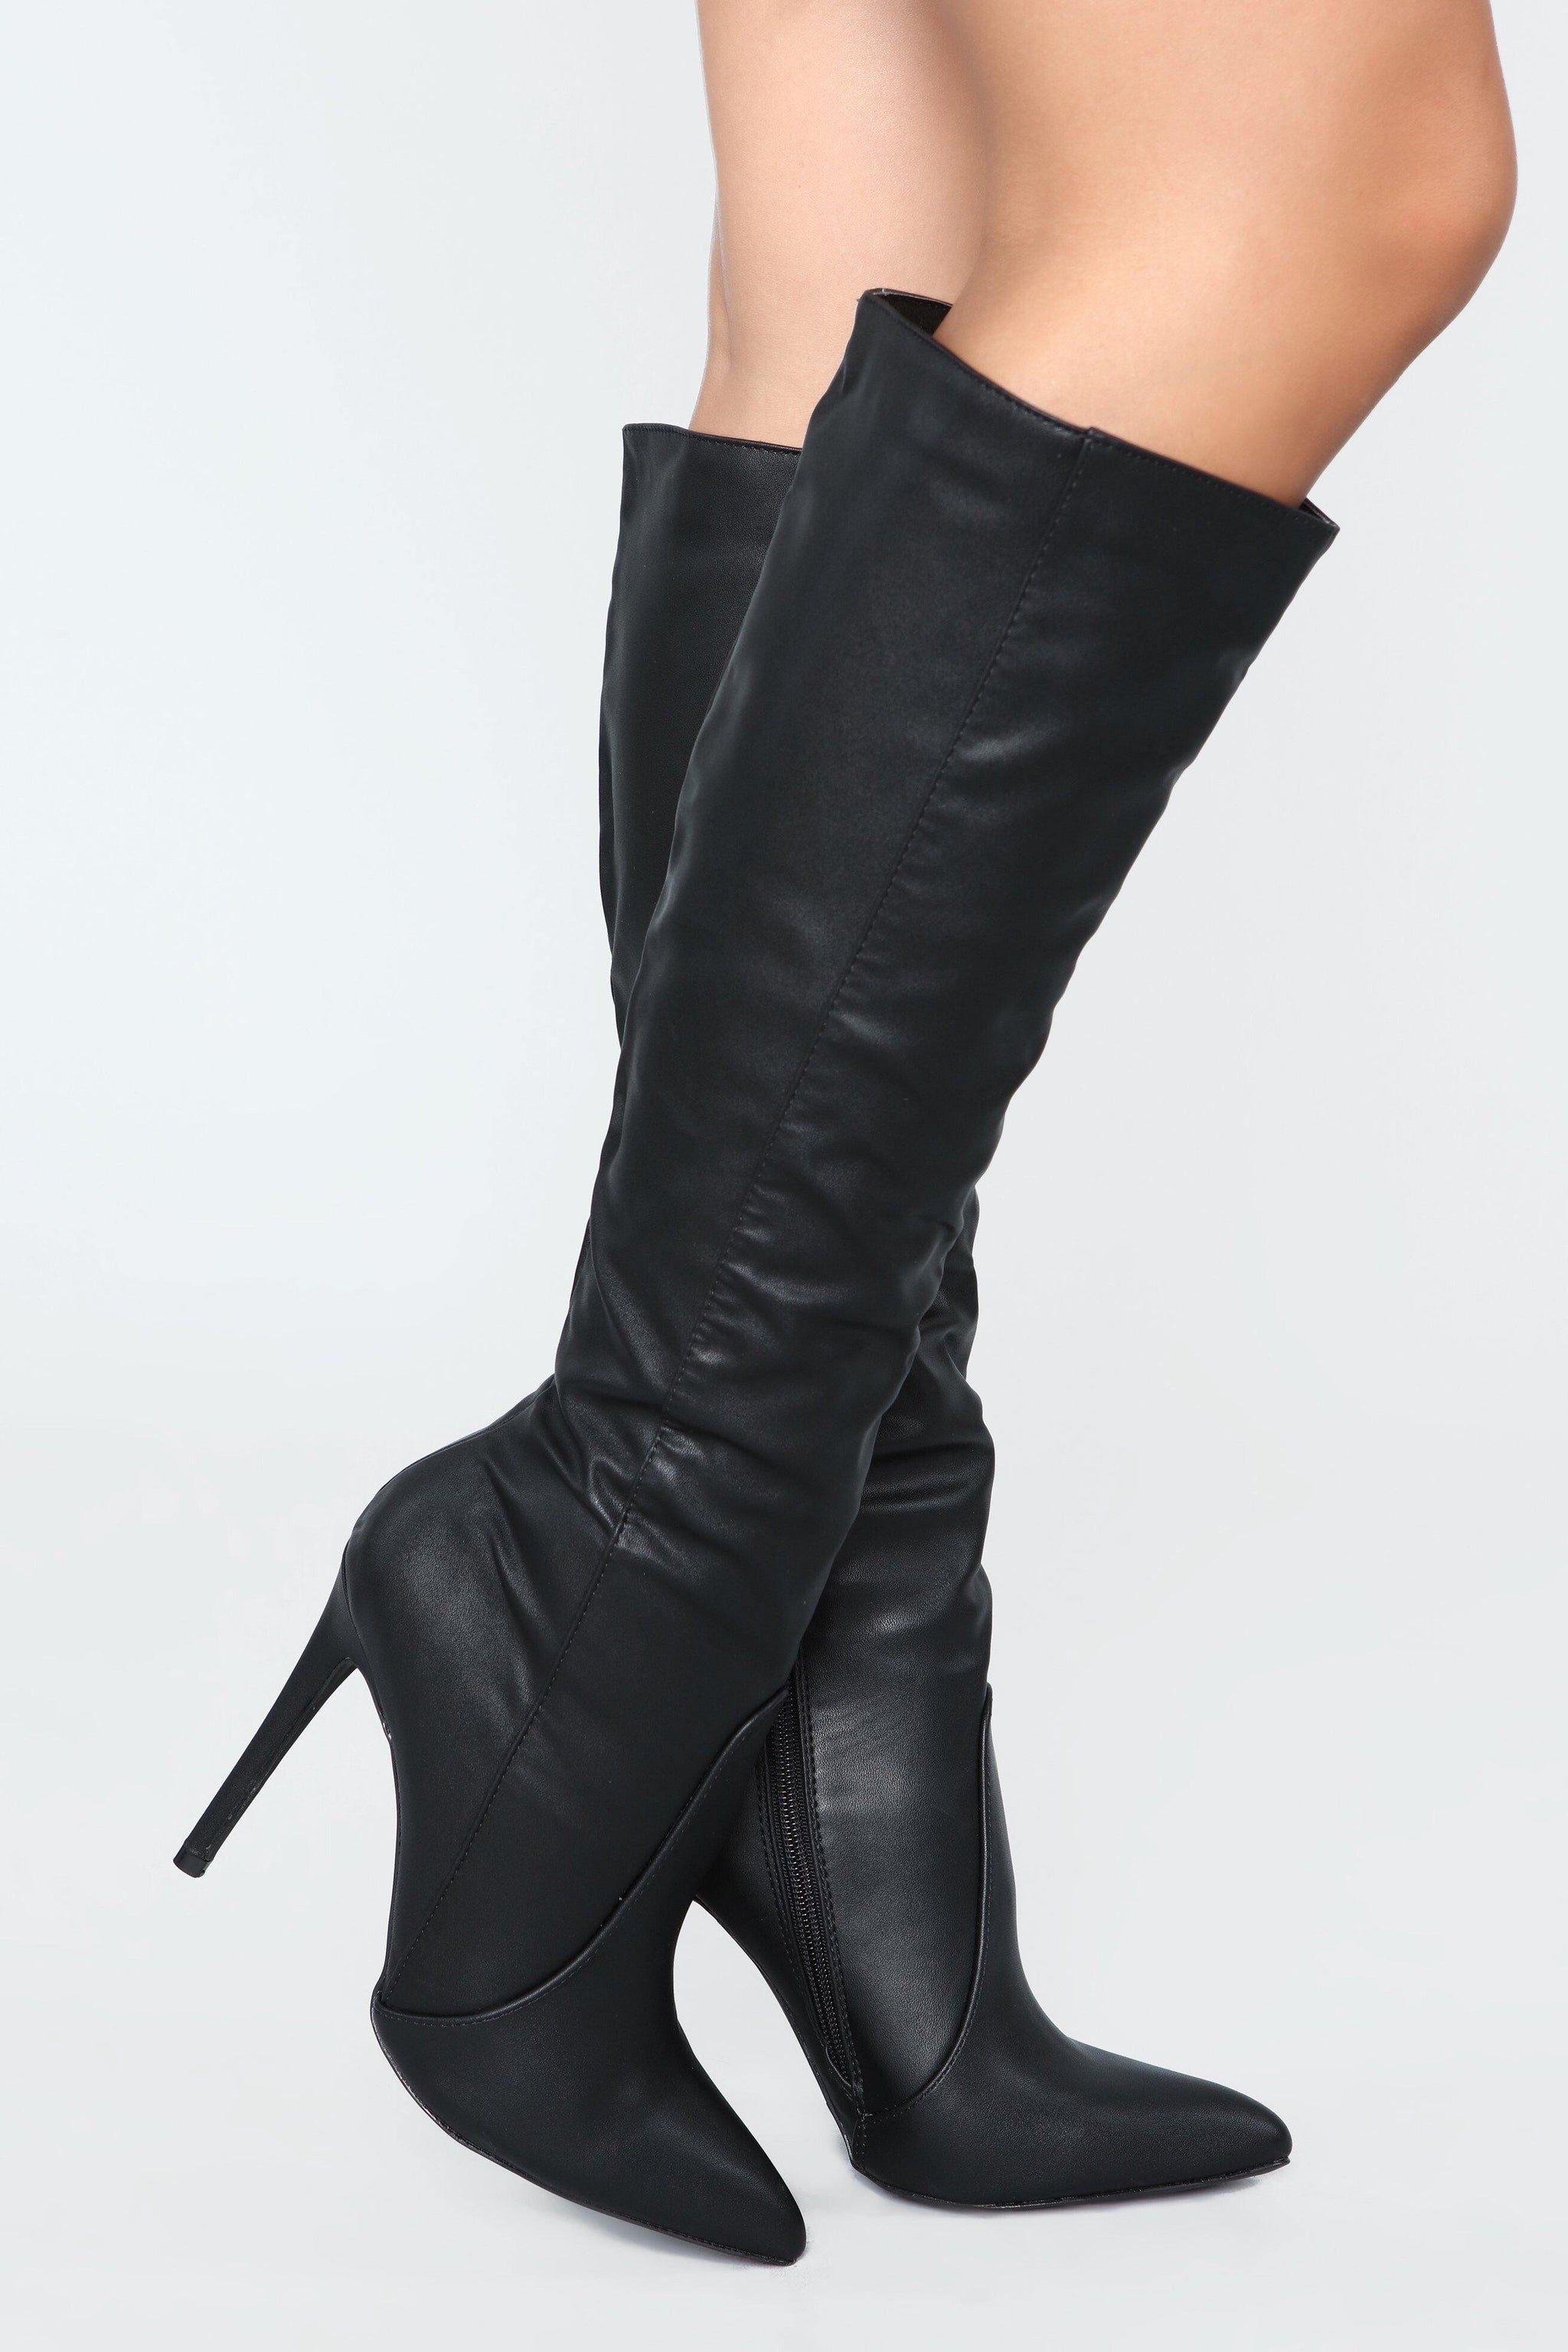 Giselle Leather Mid Calf Black Boots